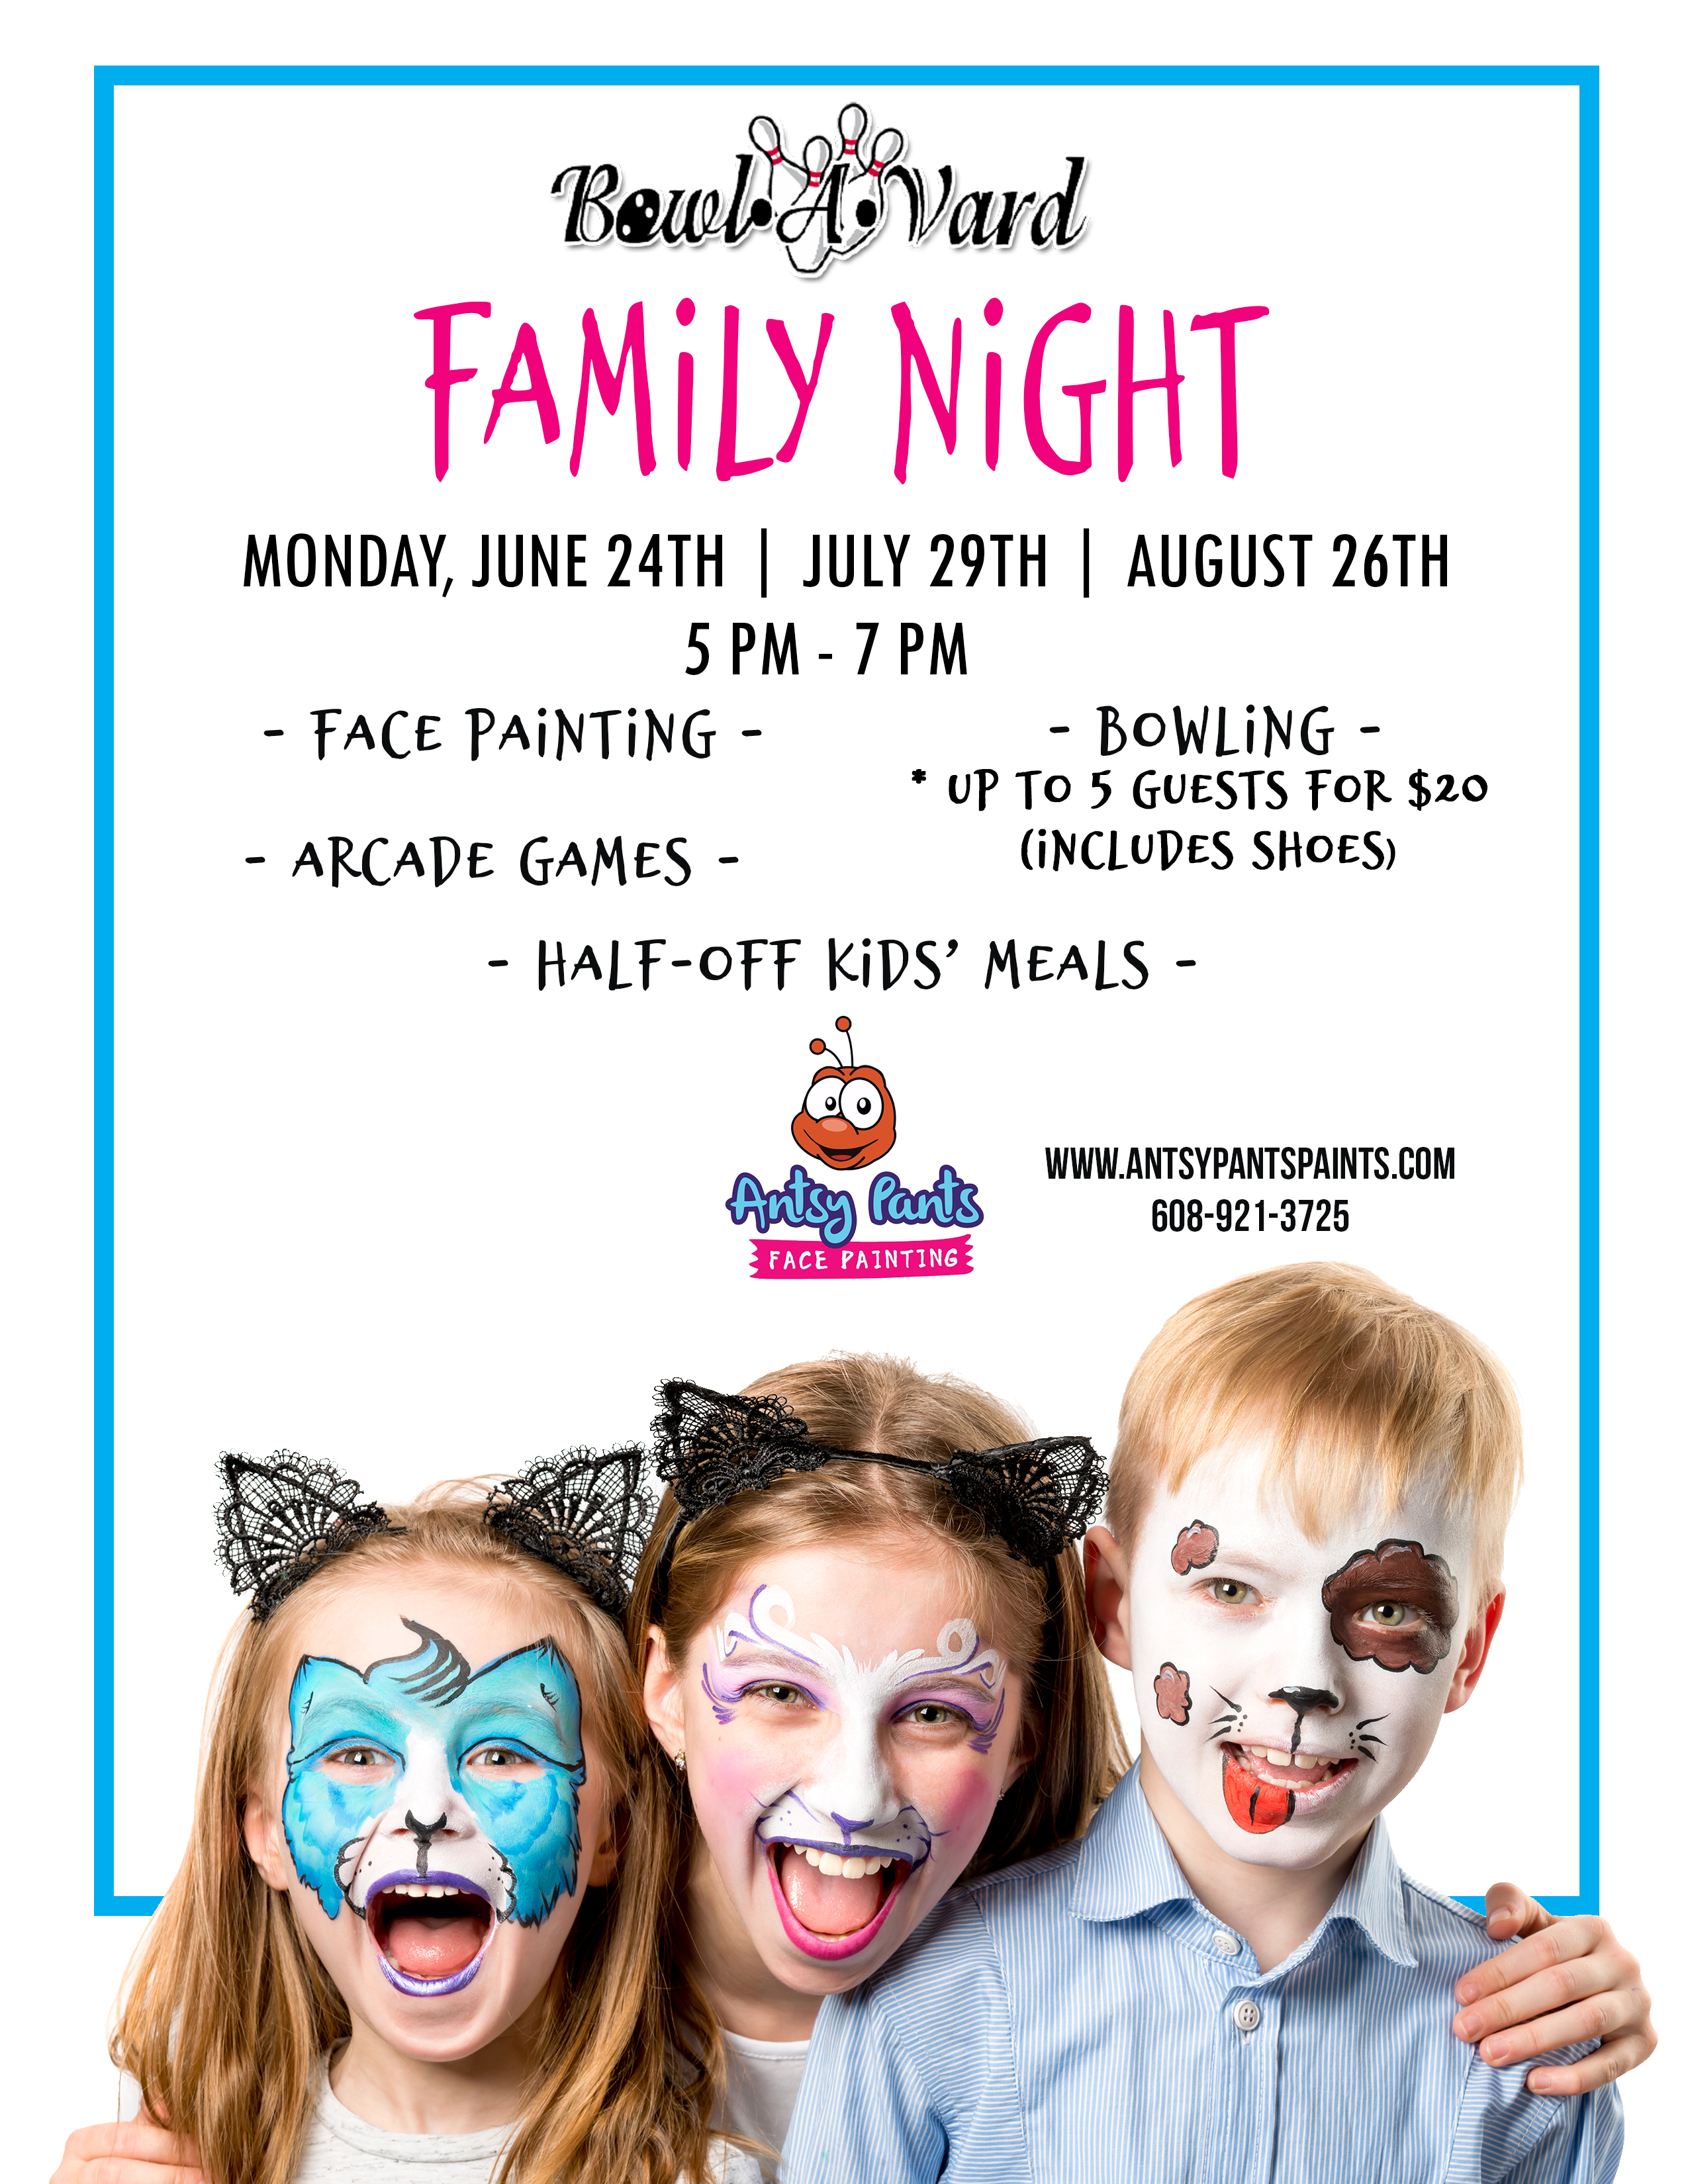 Family Game Night. Monday June 24th, July 29th, and August 26th. From 5 pm - 7 pm. Featuring: Face painting by Antsy Pants, Arcade Games, Half off Kid's Meals, and Bowling ( for up to 5 guests for $20 including shoes)